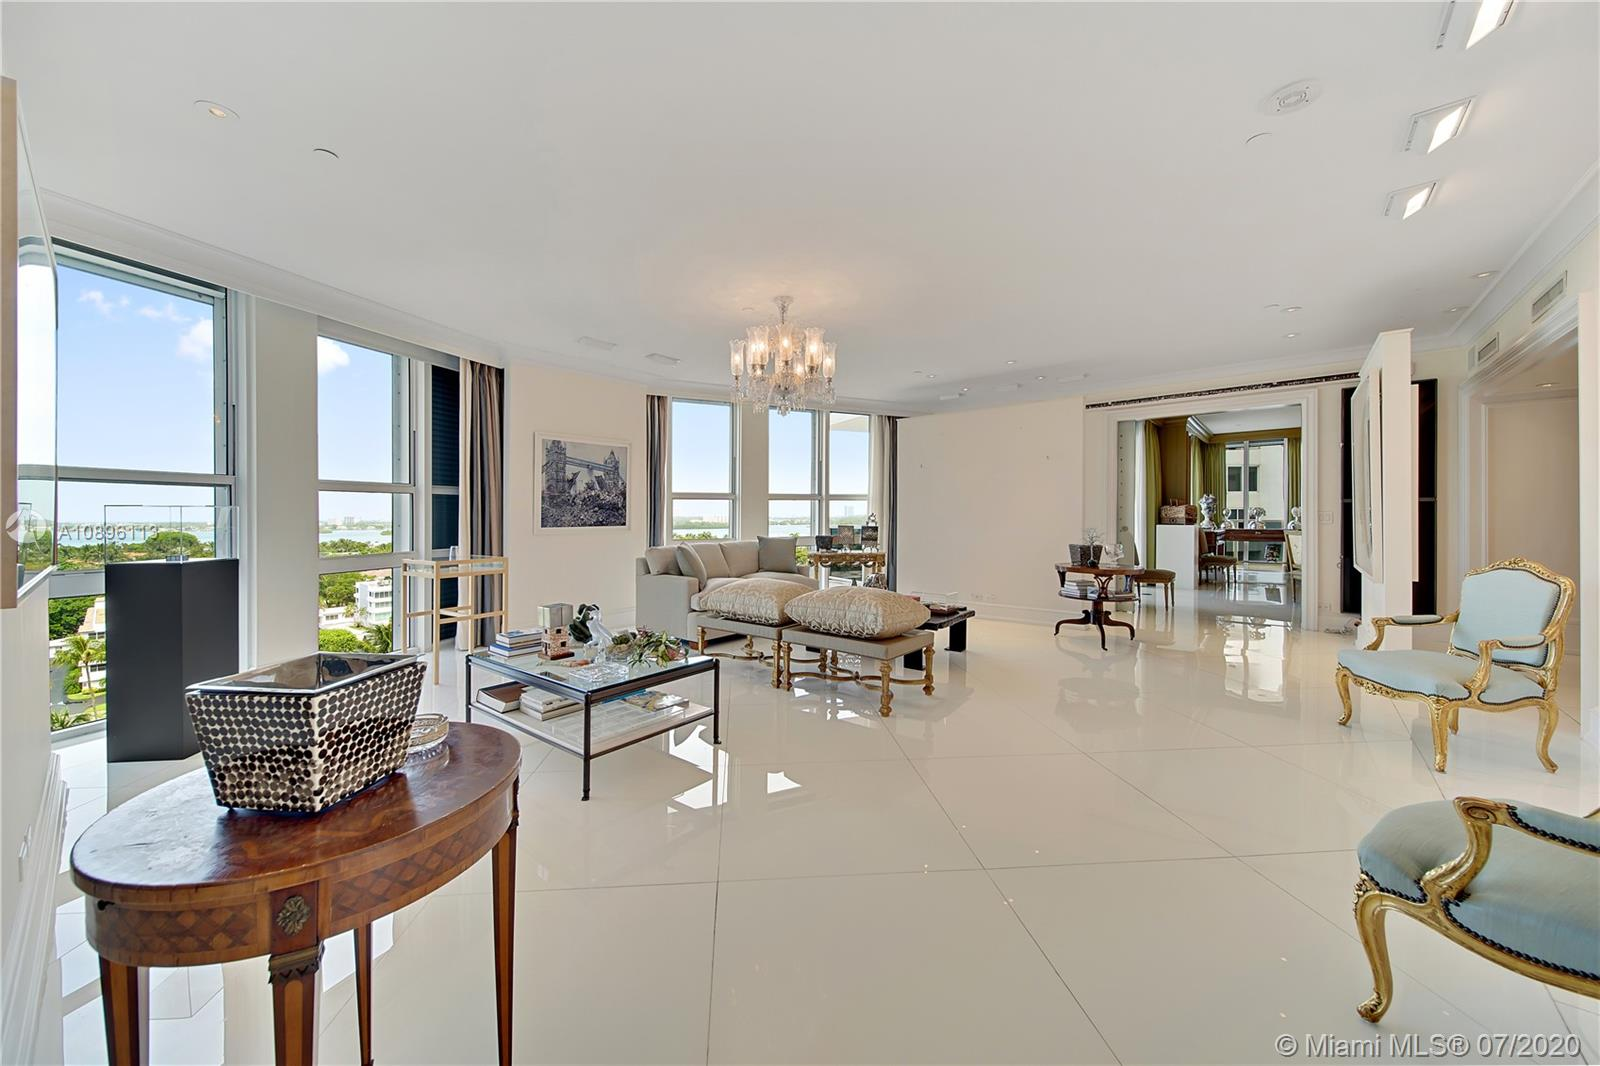 Sophistication and luxury meet in this 6 BD, 6/1 BA custom combination unit in exclusive ocean front Bellini in Bal Harbour. Perfect for a large family. Private elevator and foyer entry. Light filled living areas with floor-to-ceiling windows include den, living room, large formal dining, and breakfast nook. Multiple oversized balconies with ocean, bay and city views. Ample sized rooms with marble baths and custom built-in closets. Spacious kitchen with generous counter top area, snack bar, cooking island and butler's pantry. Marble and wood floors. Maids quarters. Residents enjoy a full-service building with heated swimming pool and spa. 2 assigned parking spaces and valet. Minutes from houses of worship fine dining and shops.